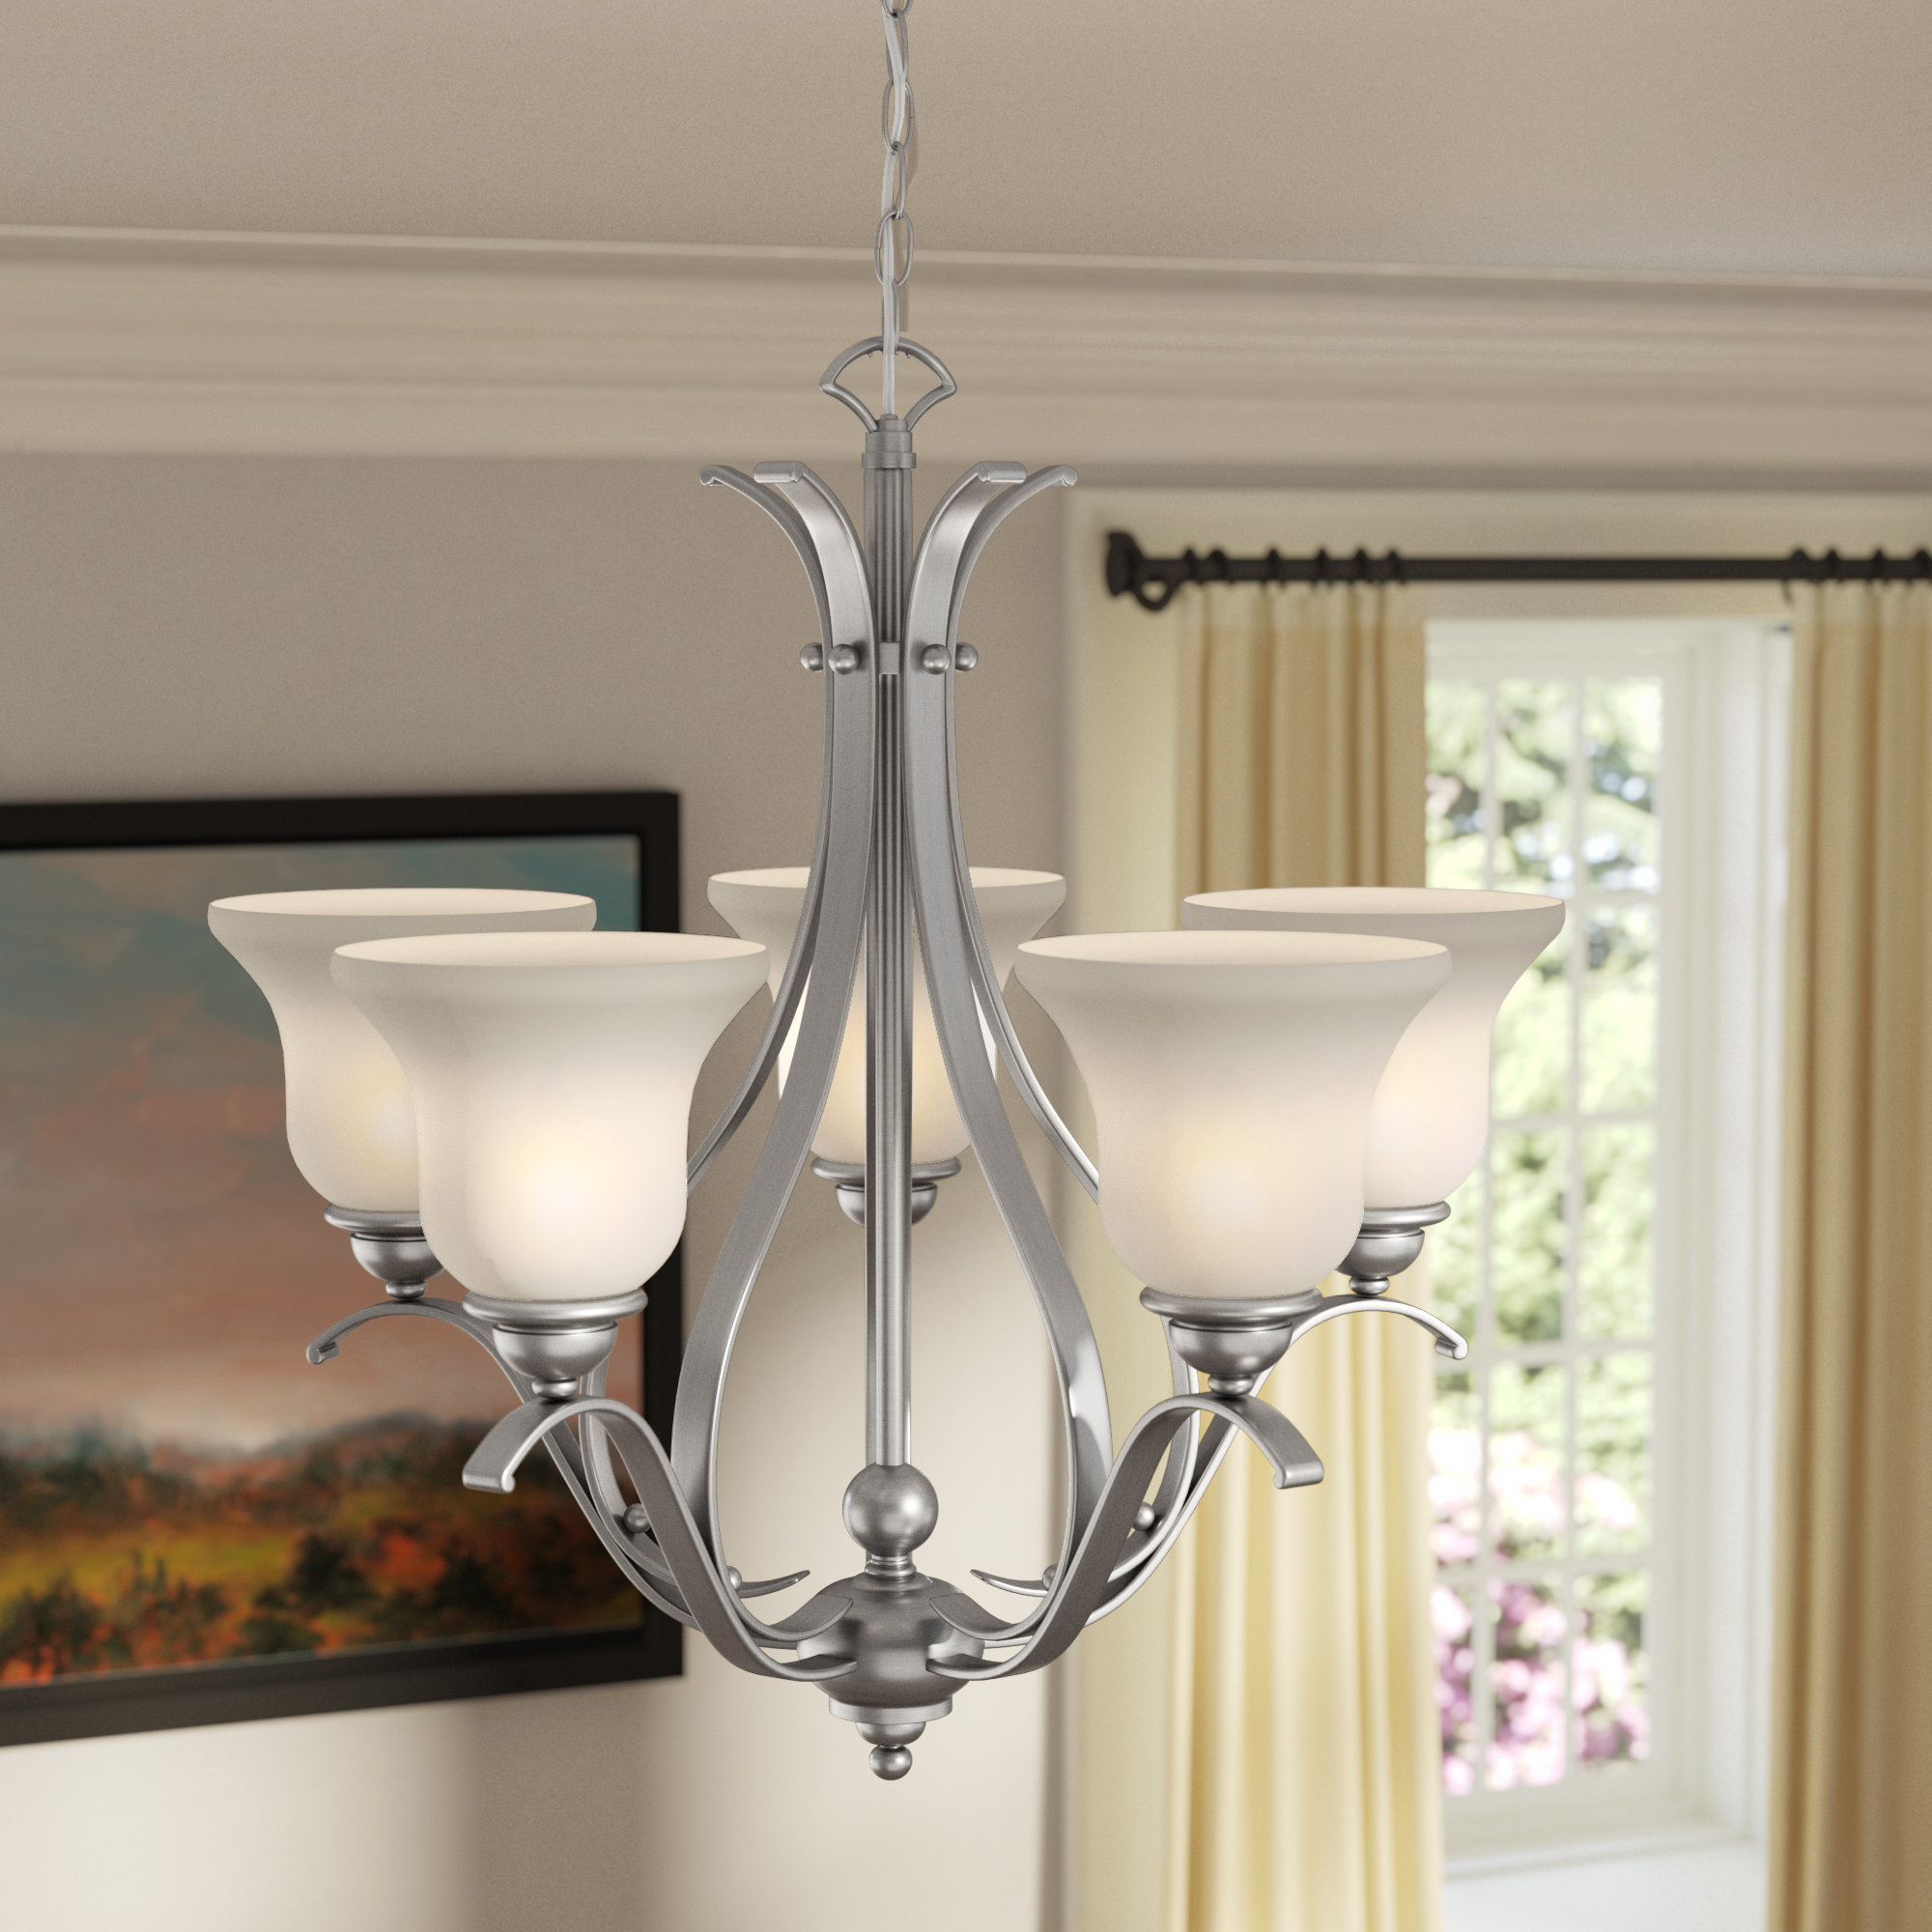 Van Horne 5 Light Shaded Chandelier Intended For Well Known Newent 5 Light Shaded Chandeliers (Gallery 23 of 25)